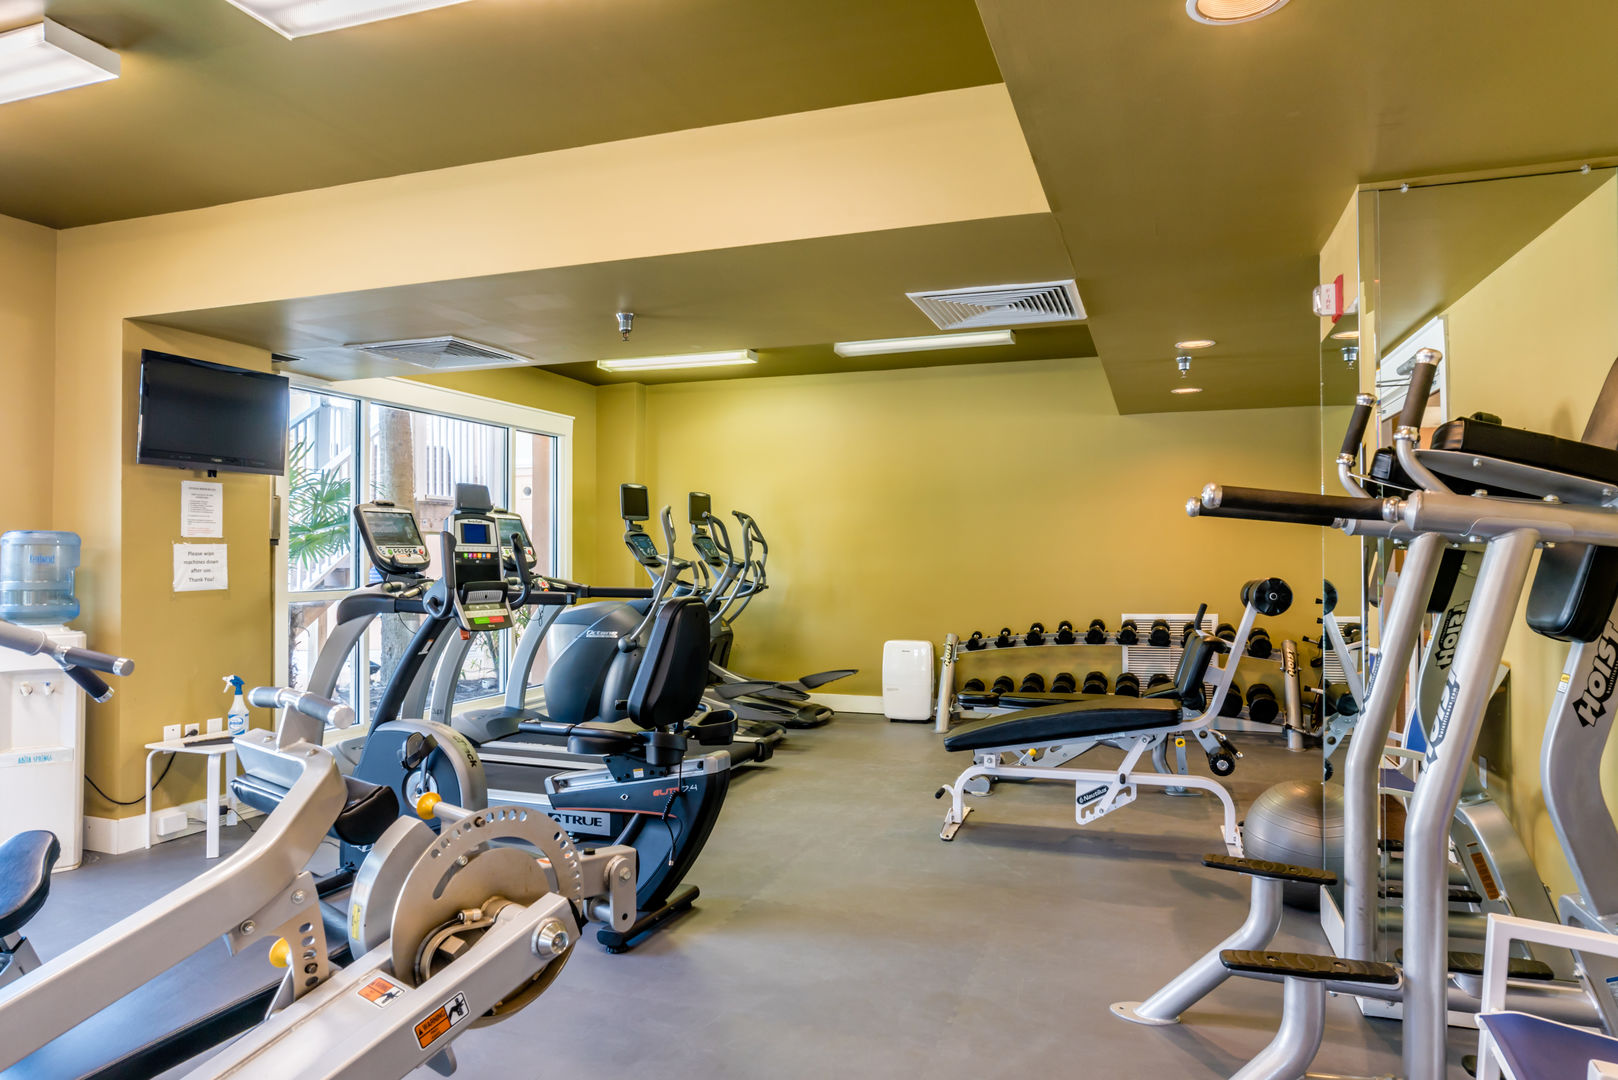 Guests will have access to a fitness center.